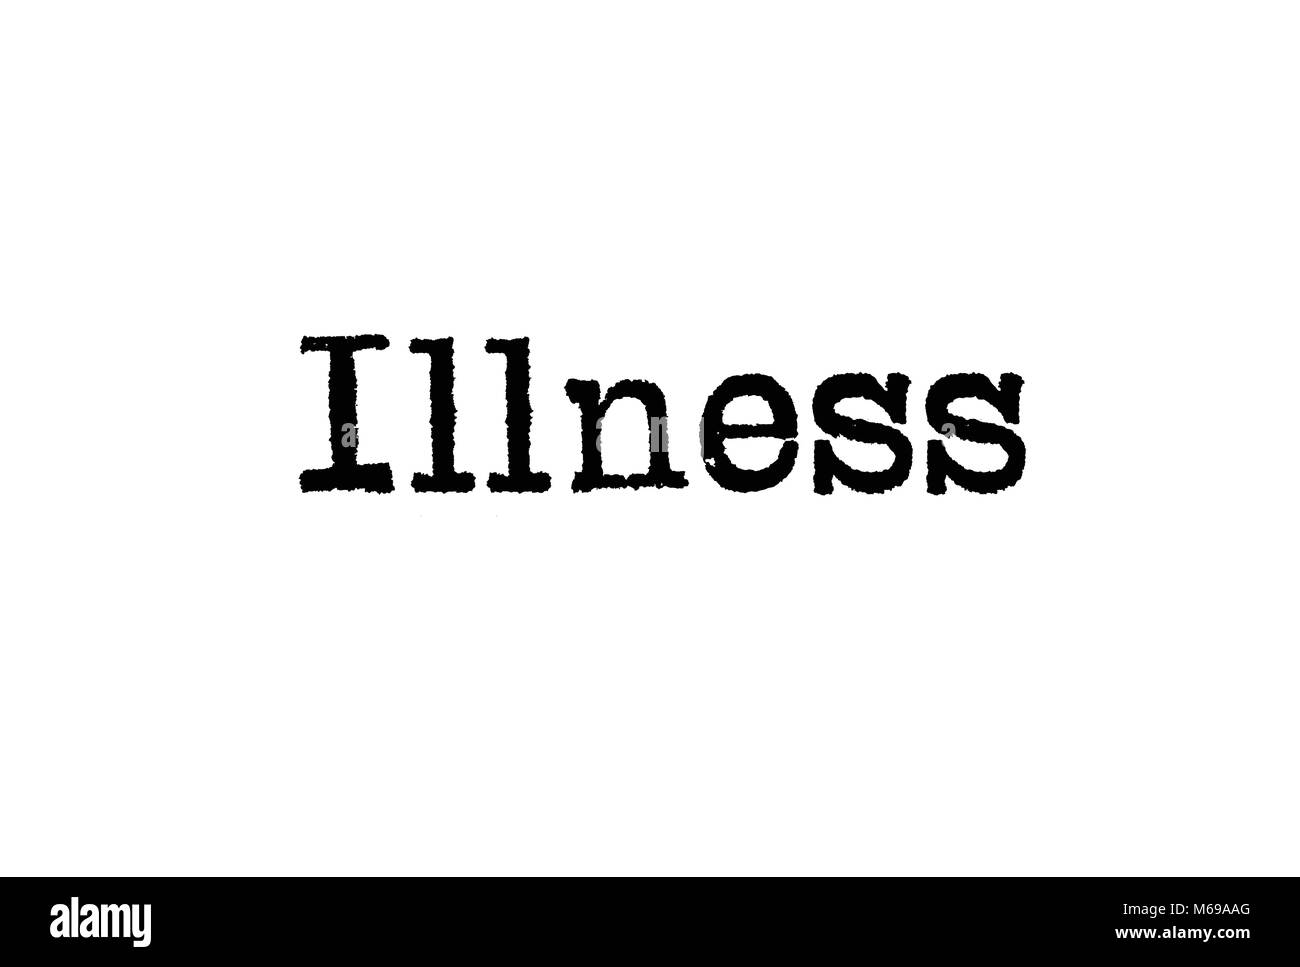 The word Illness from a typewriter on a white background - Stock Image